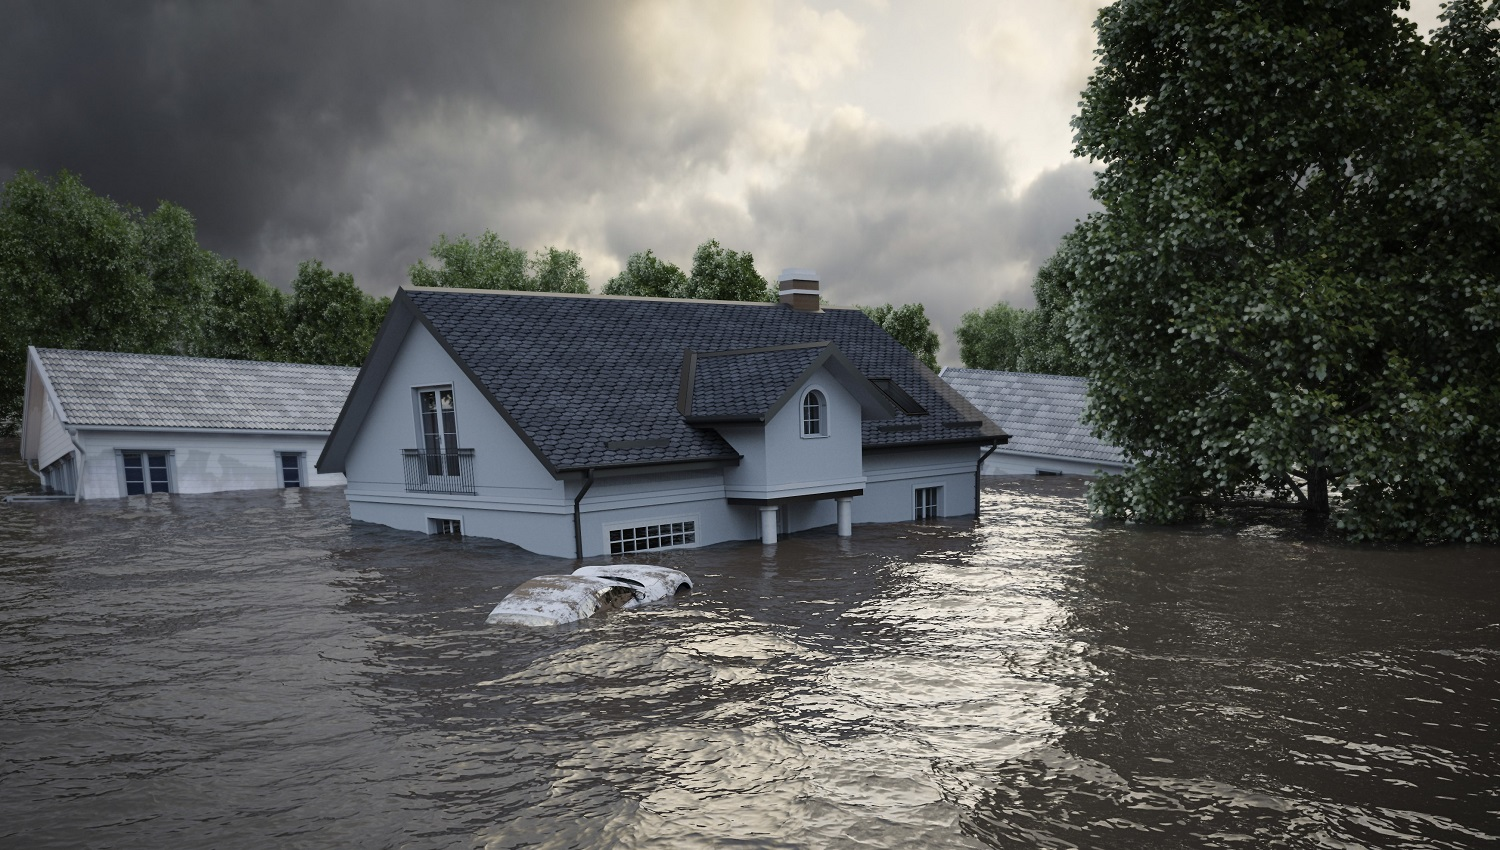 What kind of warning system should be used in flood-risk areas?